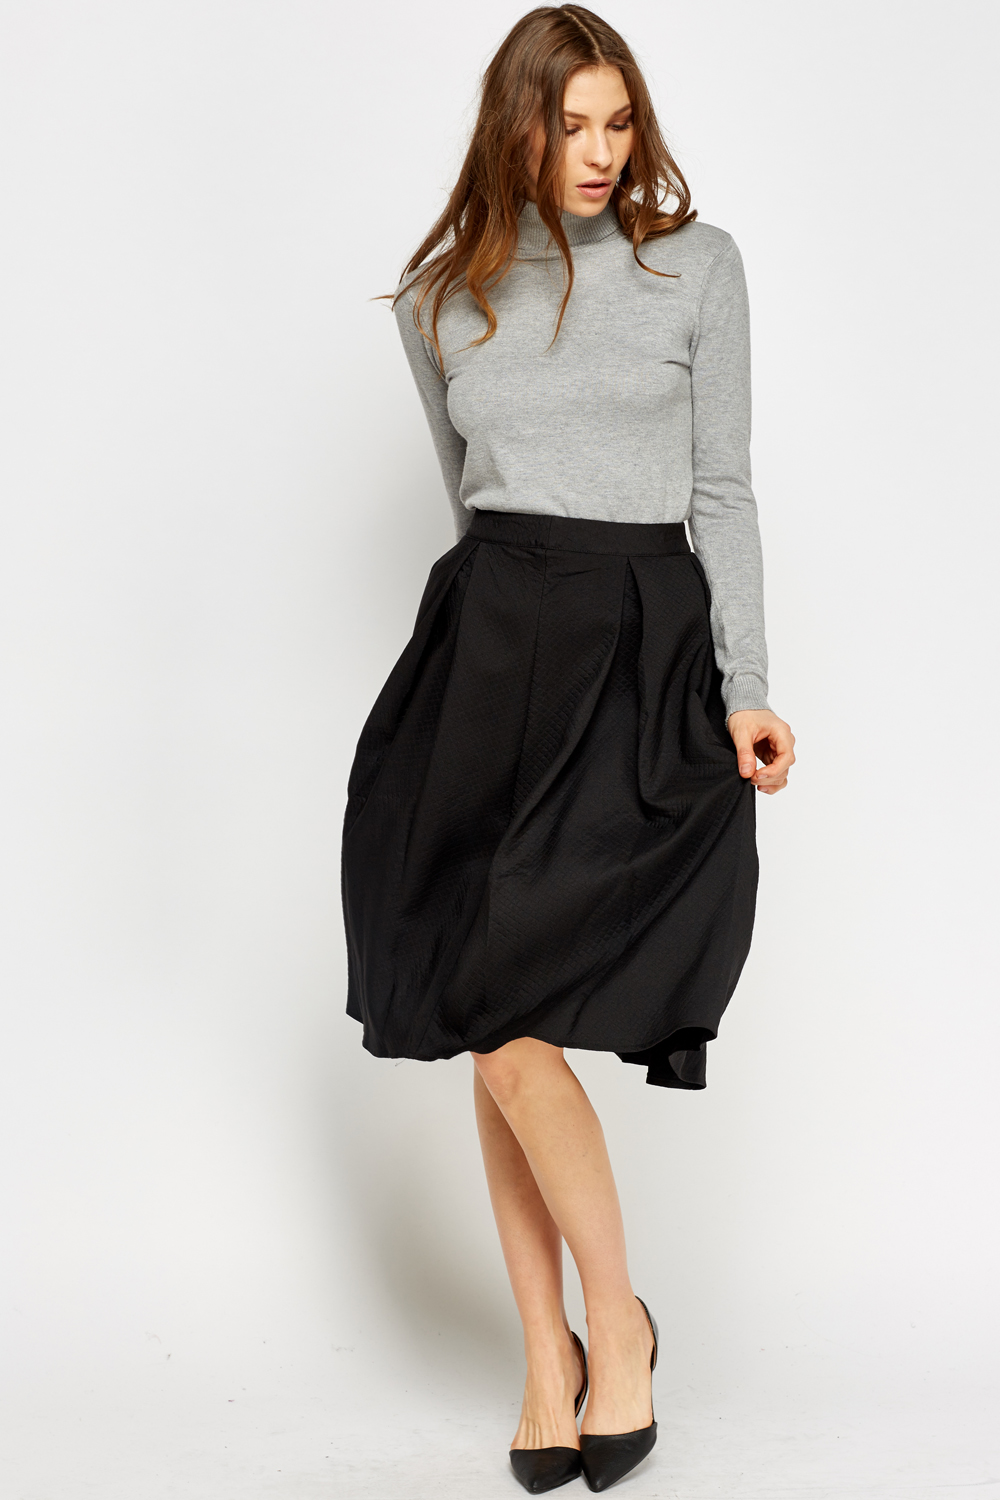 High Waist Black Midi Skirt - Just £5